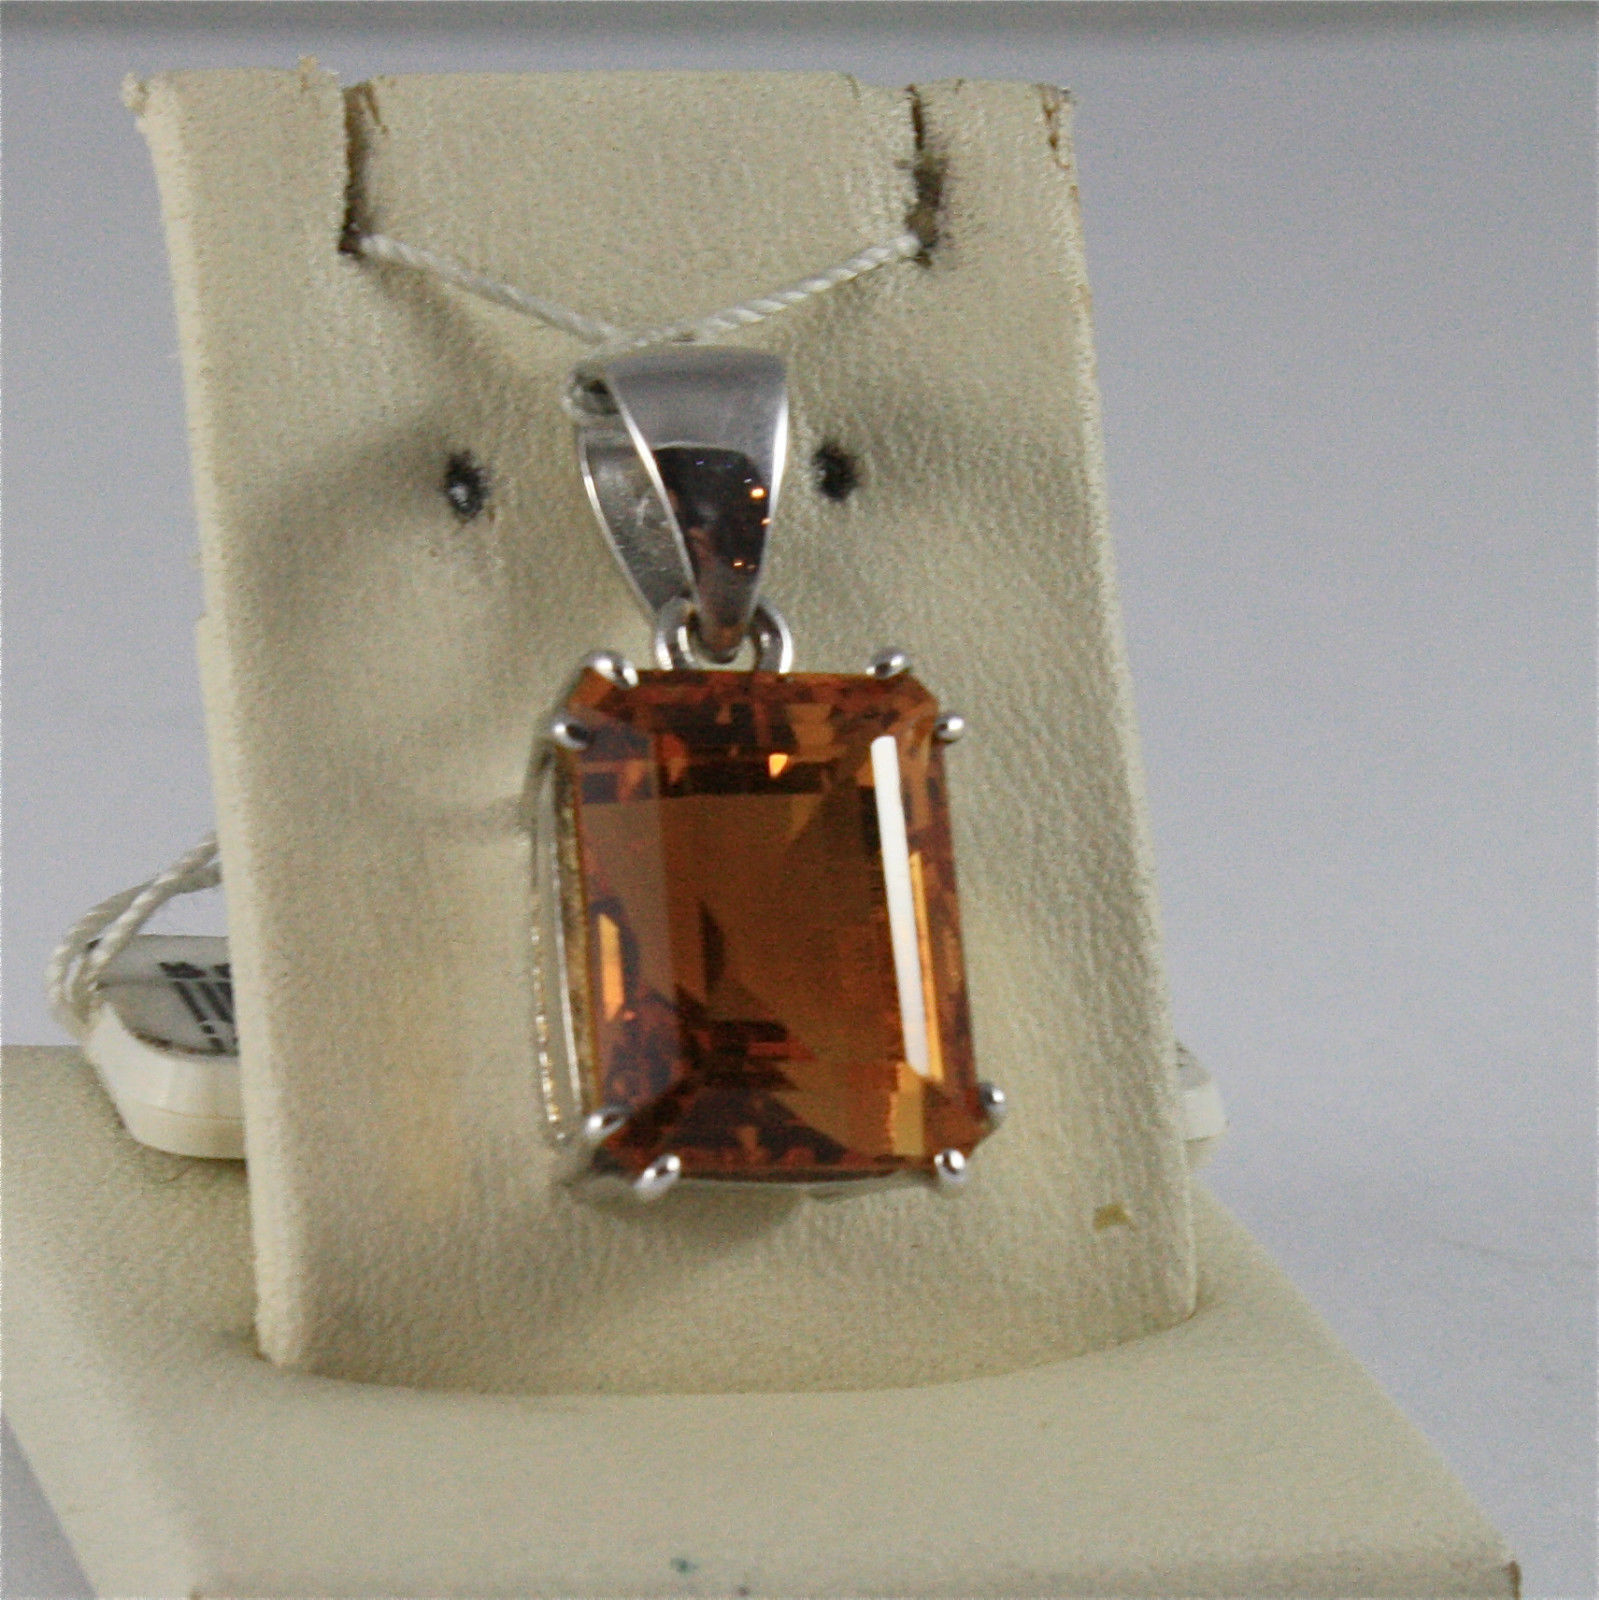 SOLID 18K WHITE GOLD PENDANT, 0,83 In, FACETED SQUARE CUT CITRINE, 8,5 CT STONE.